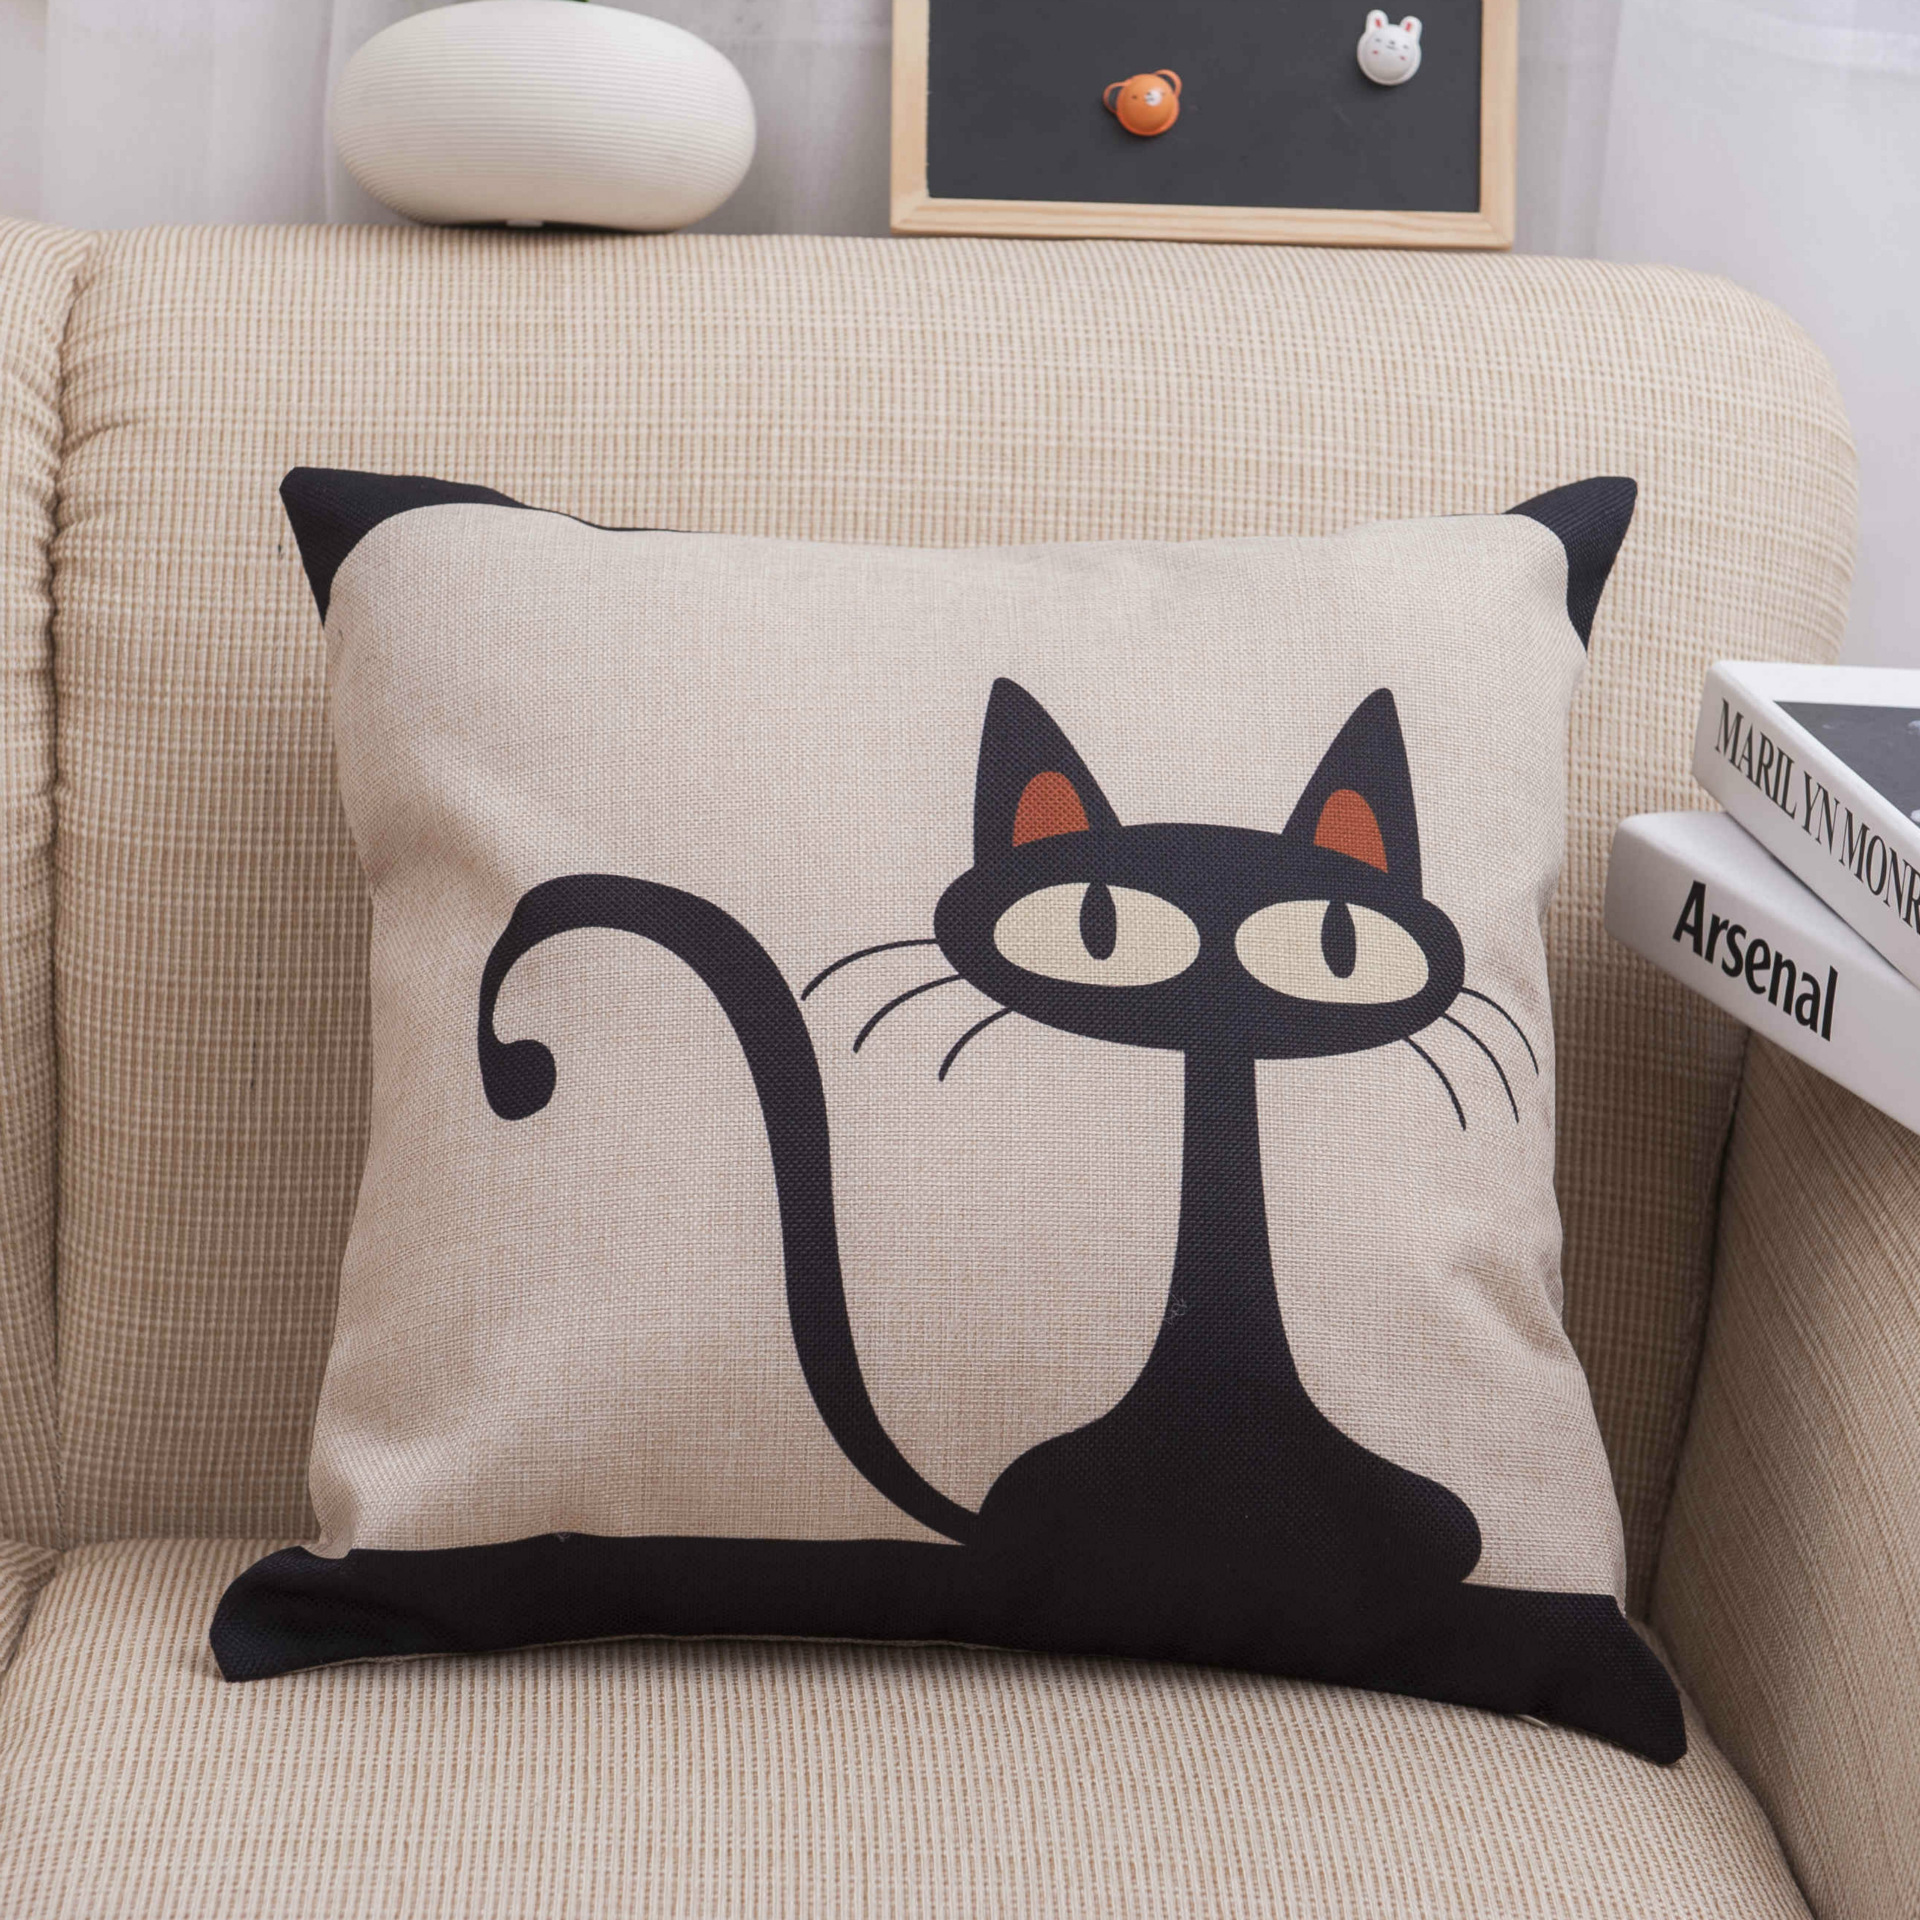 Square Cotton Linen Black Cat Animals Printed Decorative Throw ...